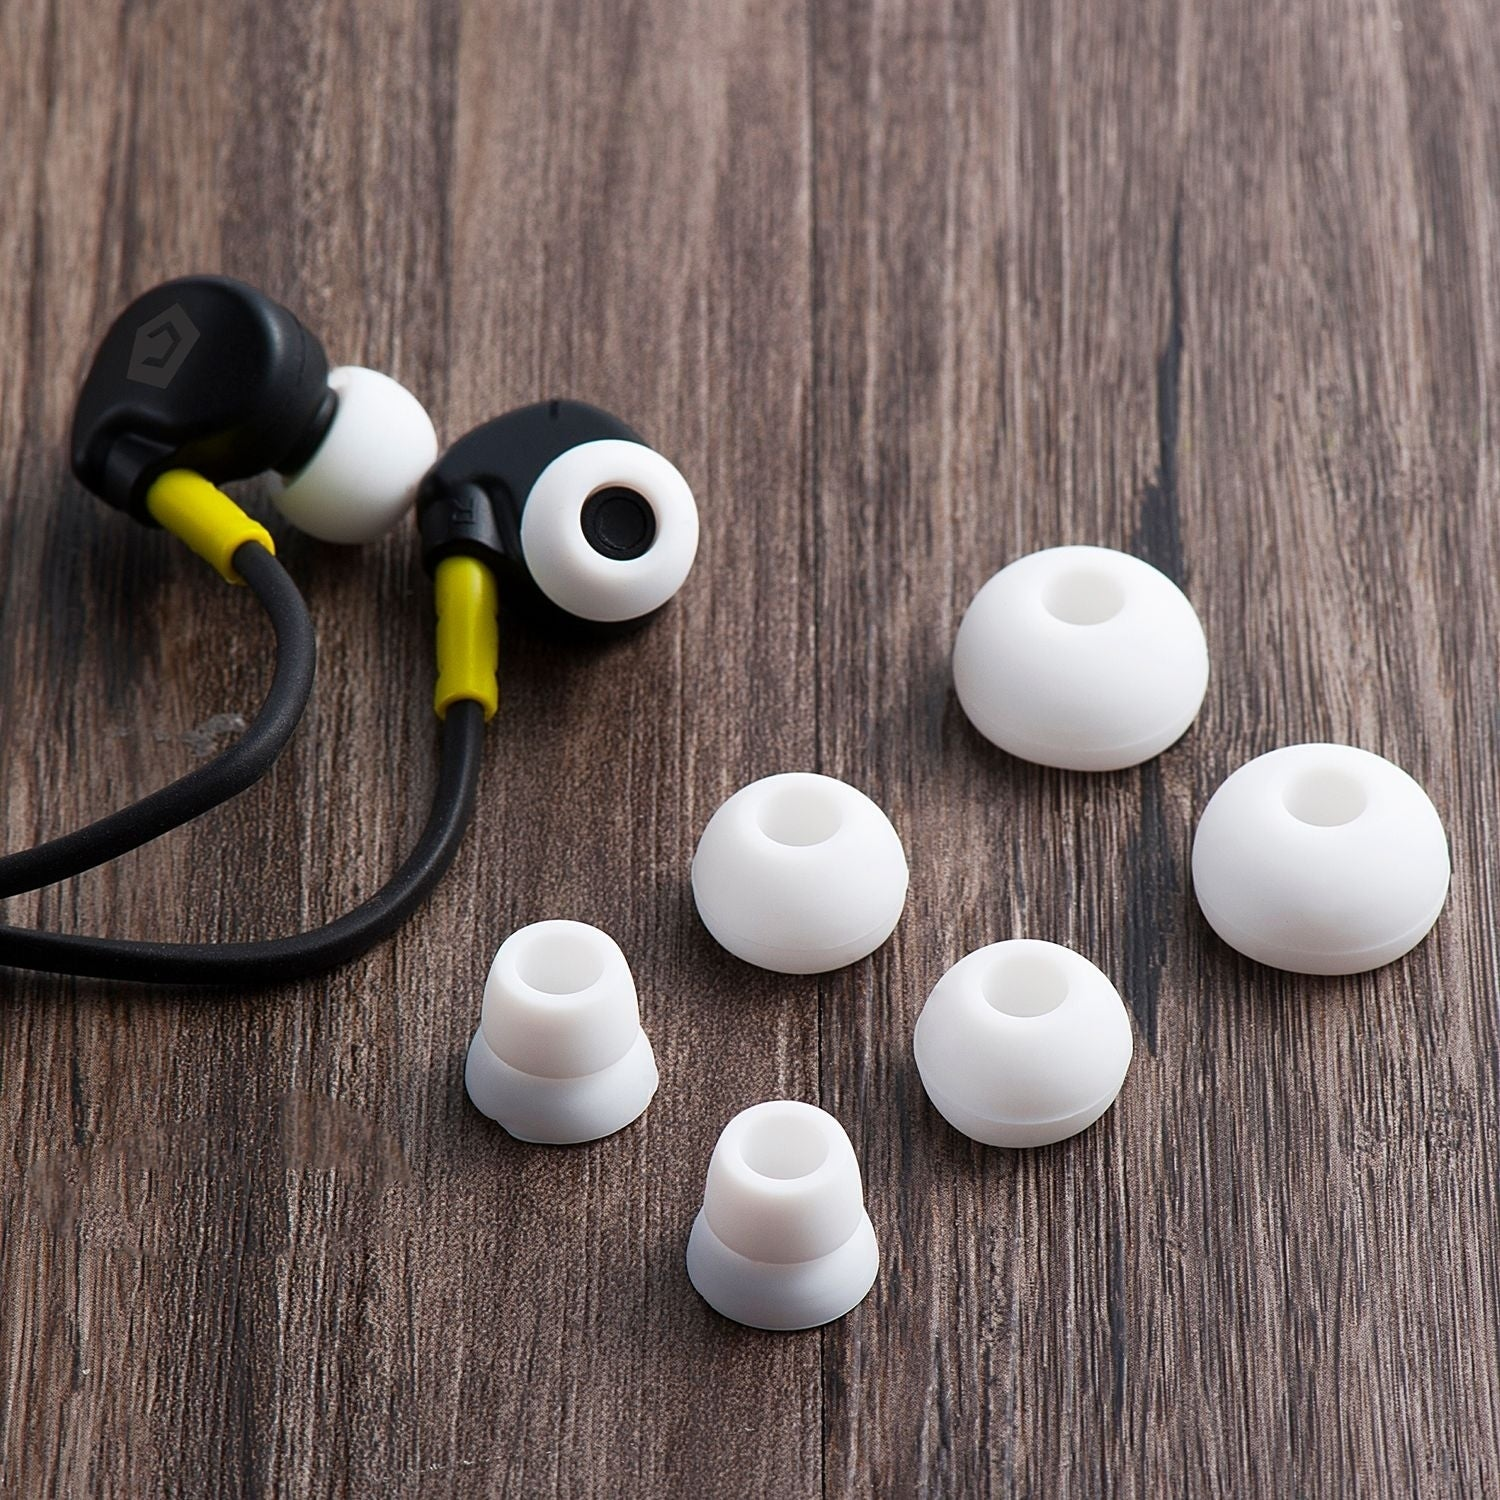 Shop Insten 4 Pair Earbud Tips Replacement For Beat By Dr Dre Powerbeats 2 3 Gen Wireless Stereo Headphones 3 Colors Overstock 24157769